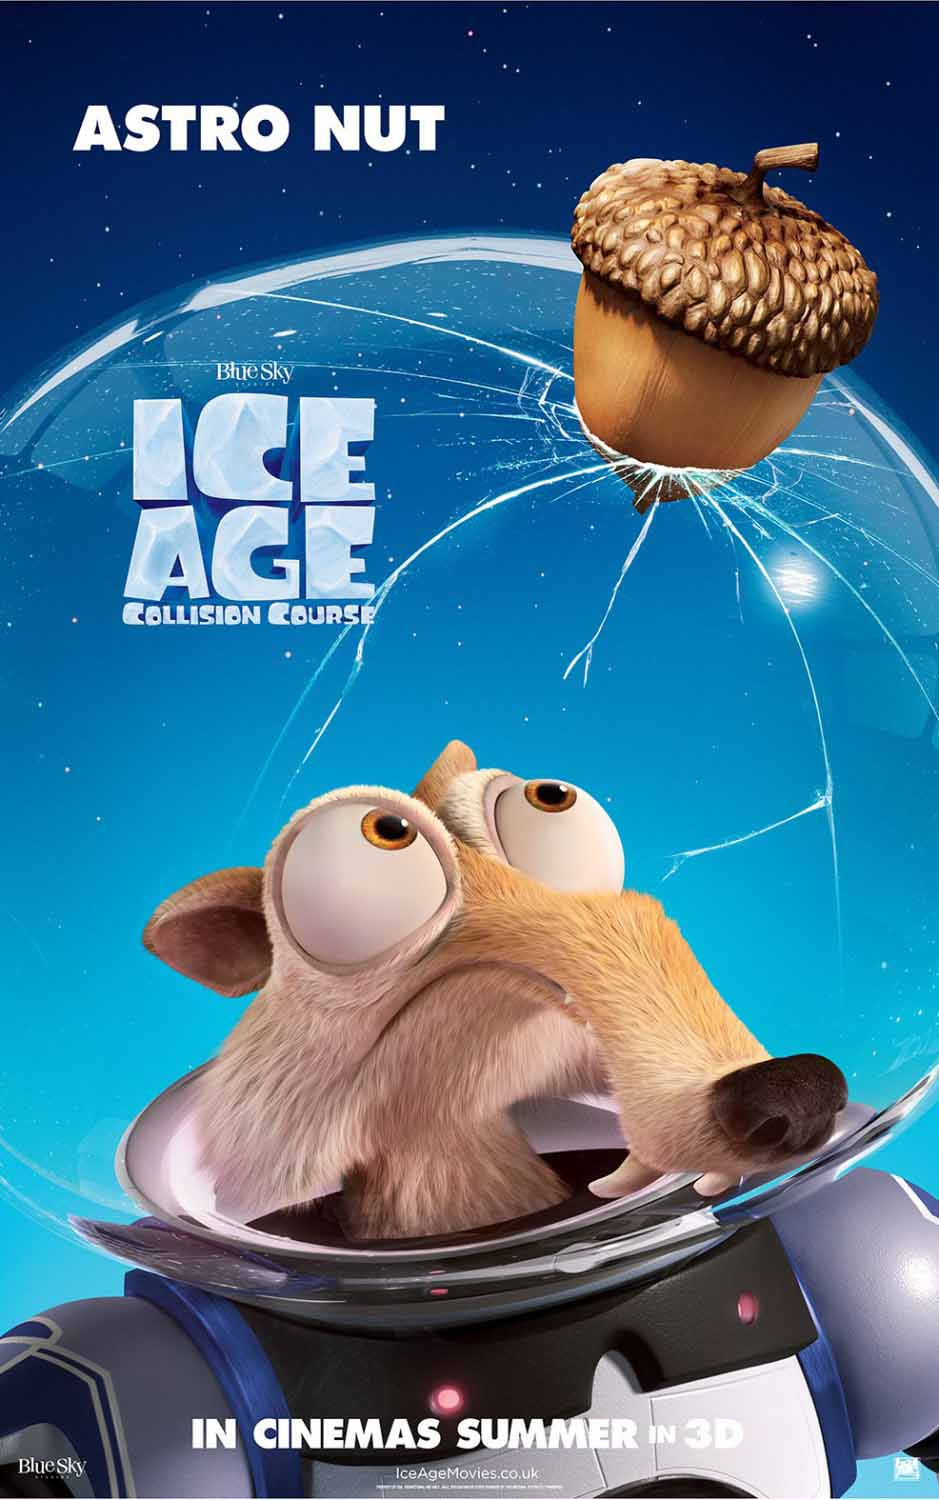 Ice age collision course first look poster